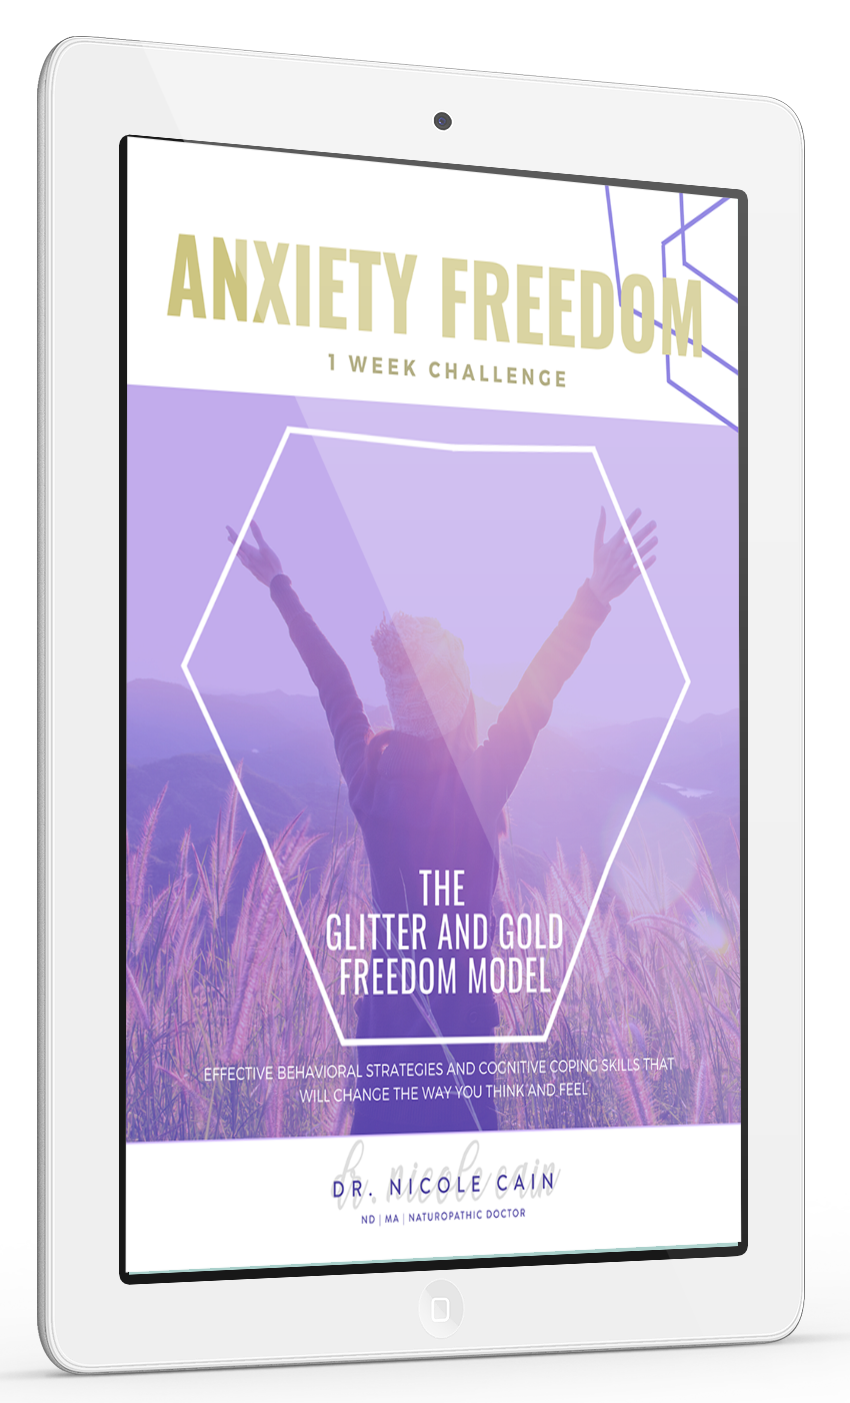 anxiety freedom challenge